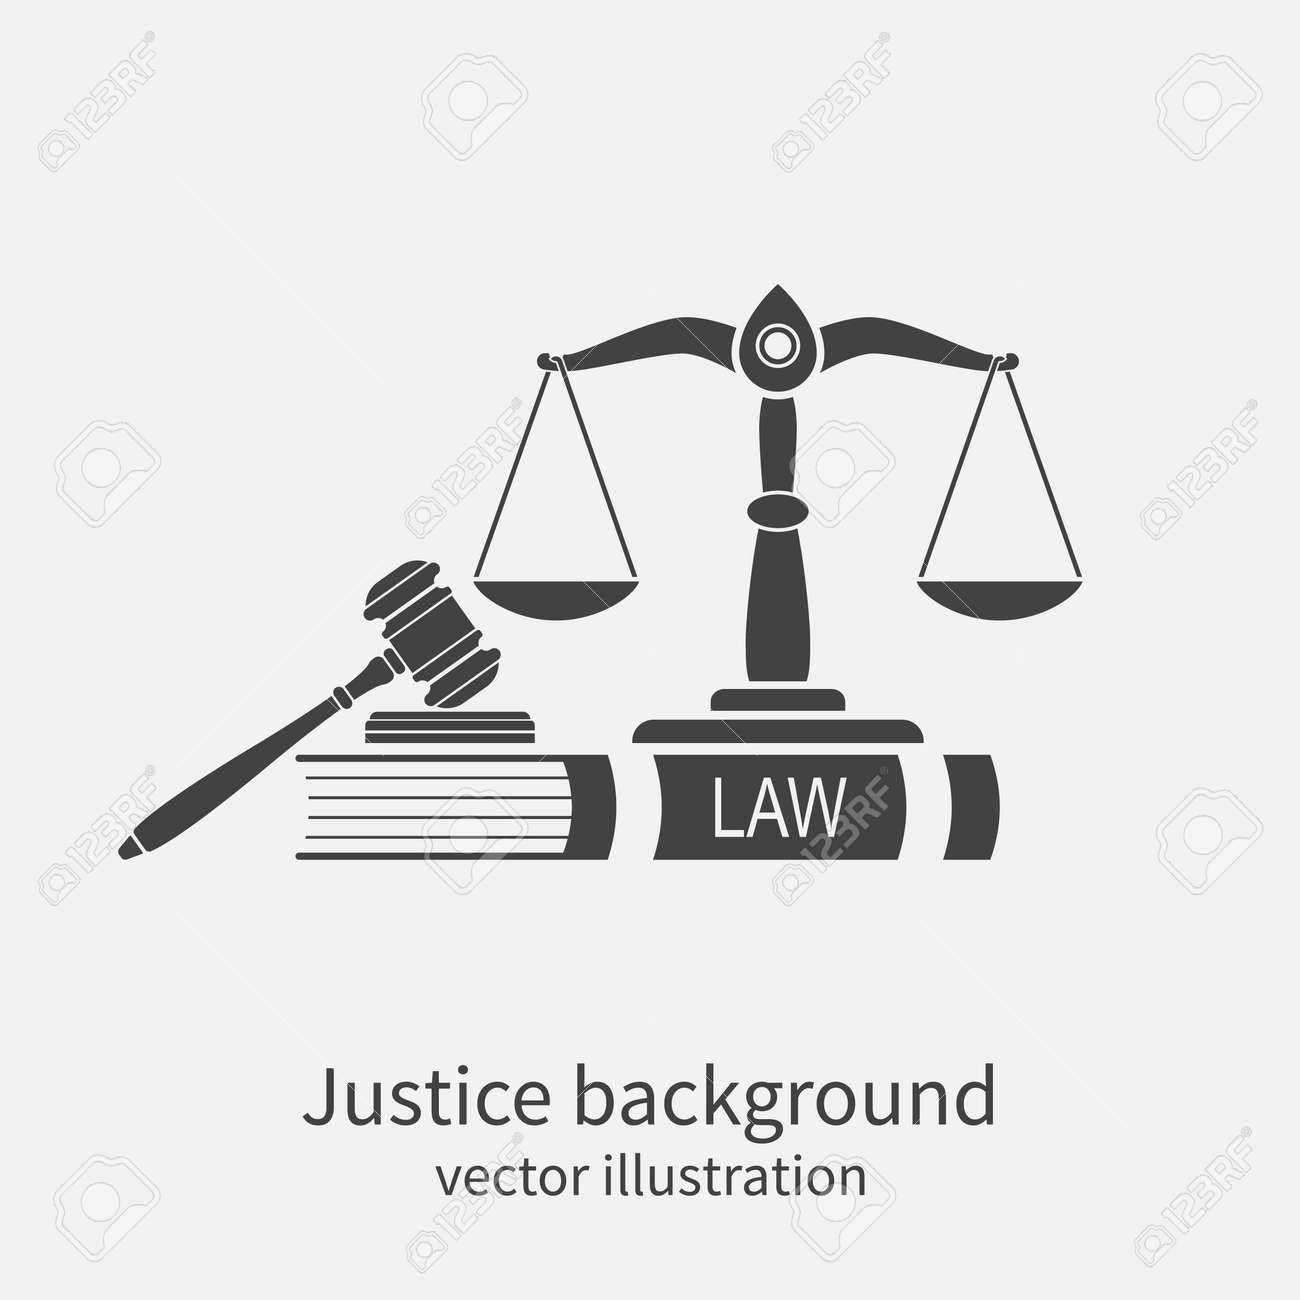 133711 law cliparts stock vector and royalty free law illustrations symbol of law and justice concept law and justice scales of justice gavel biocorpaavc